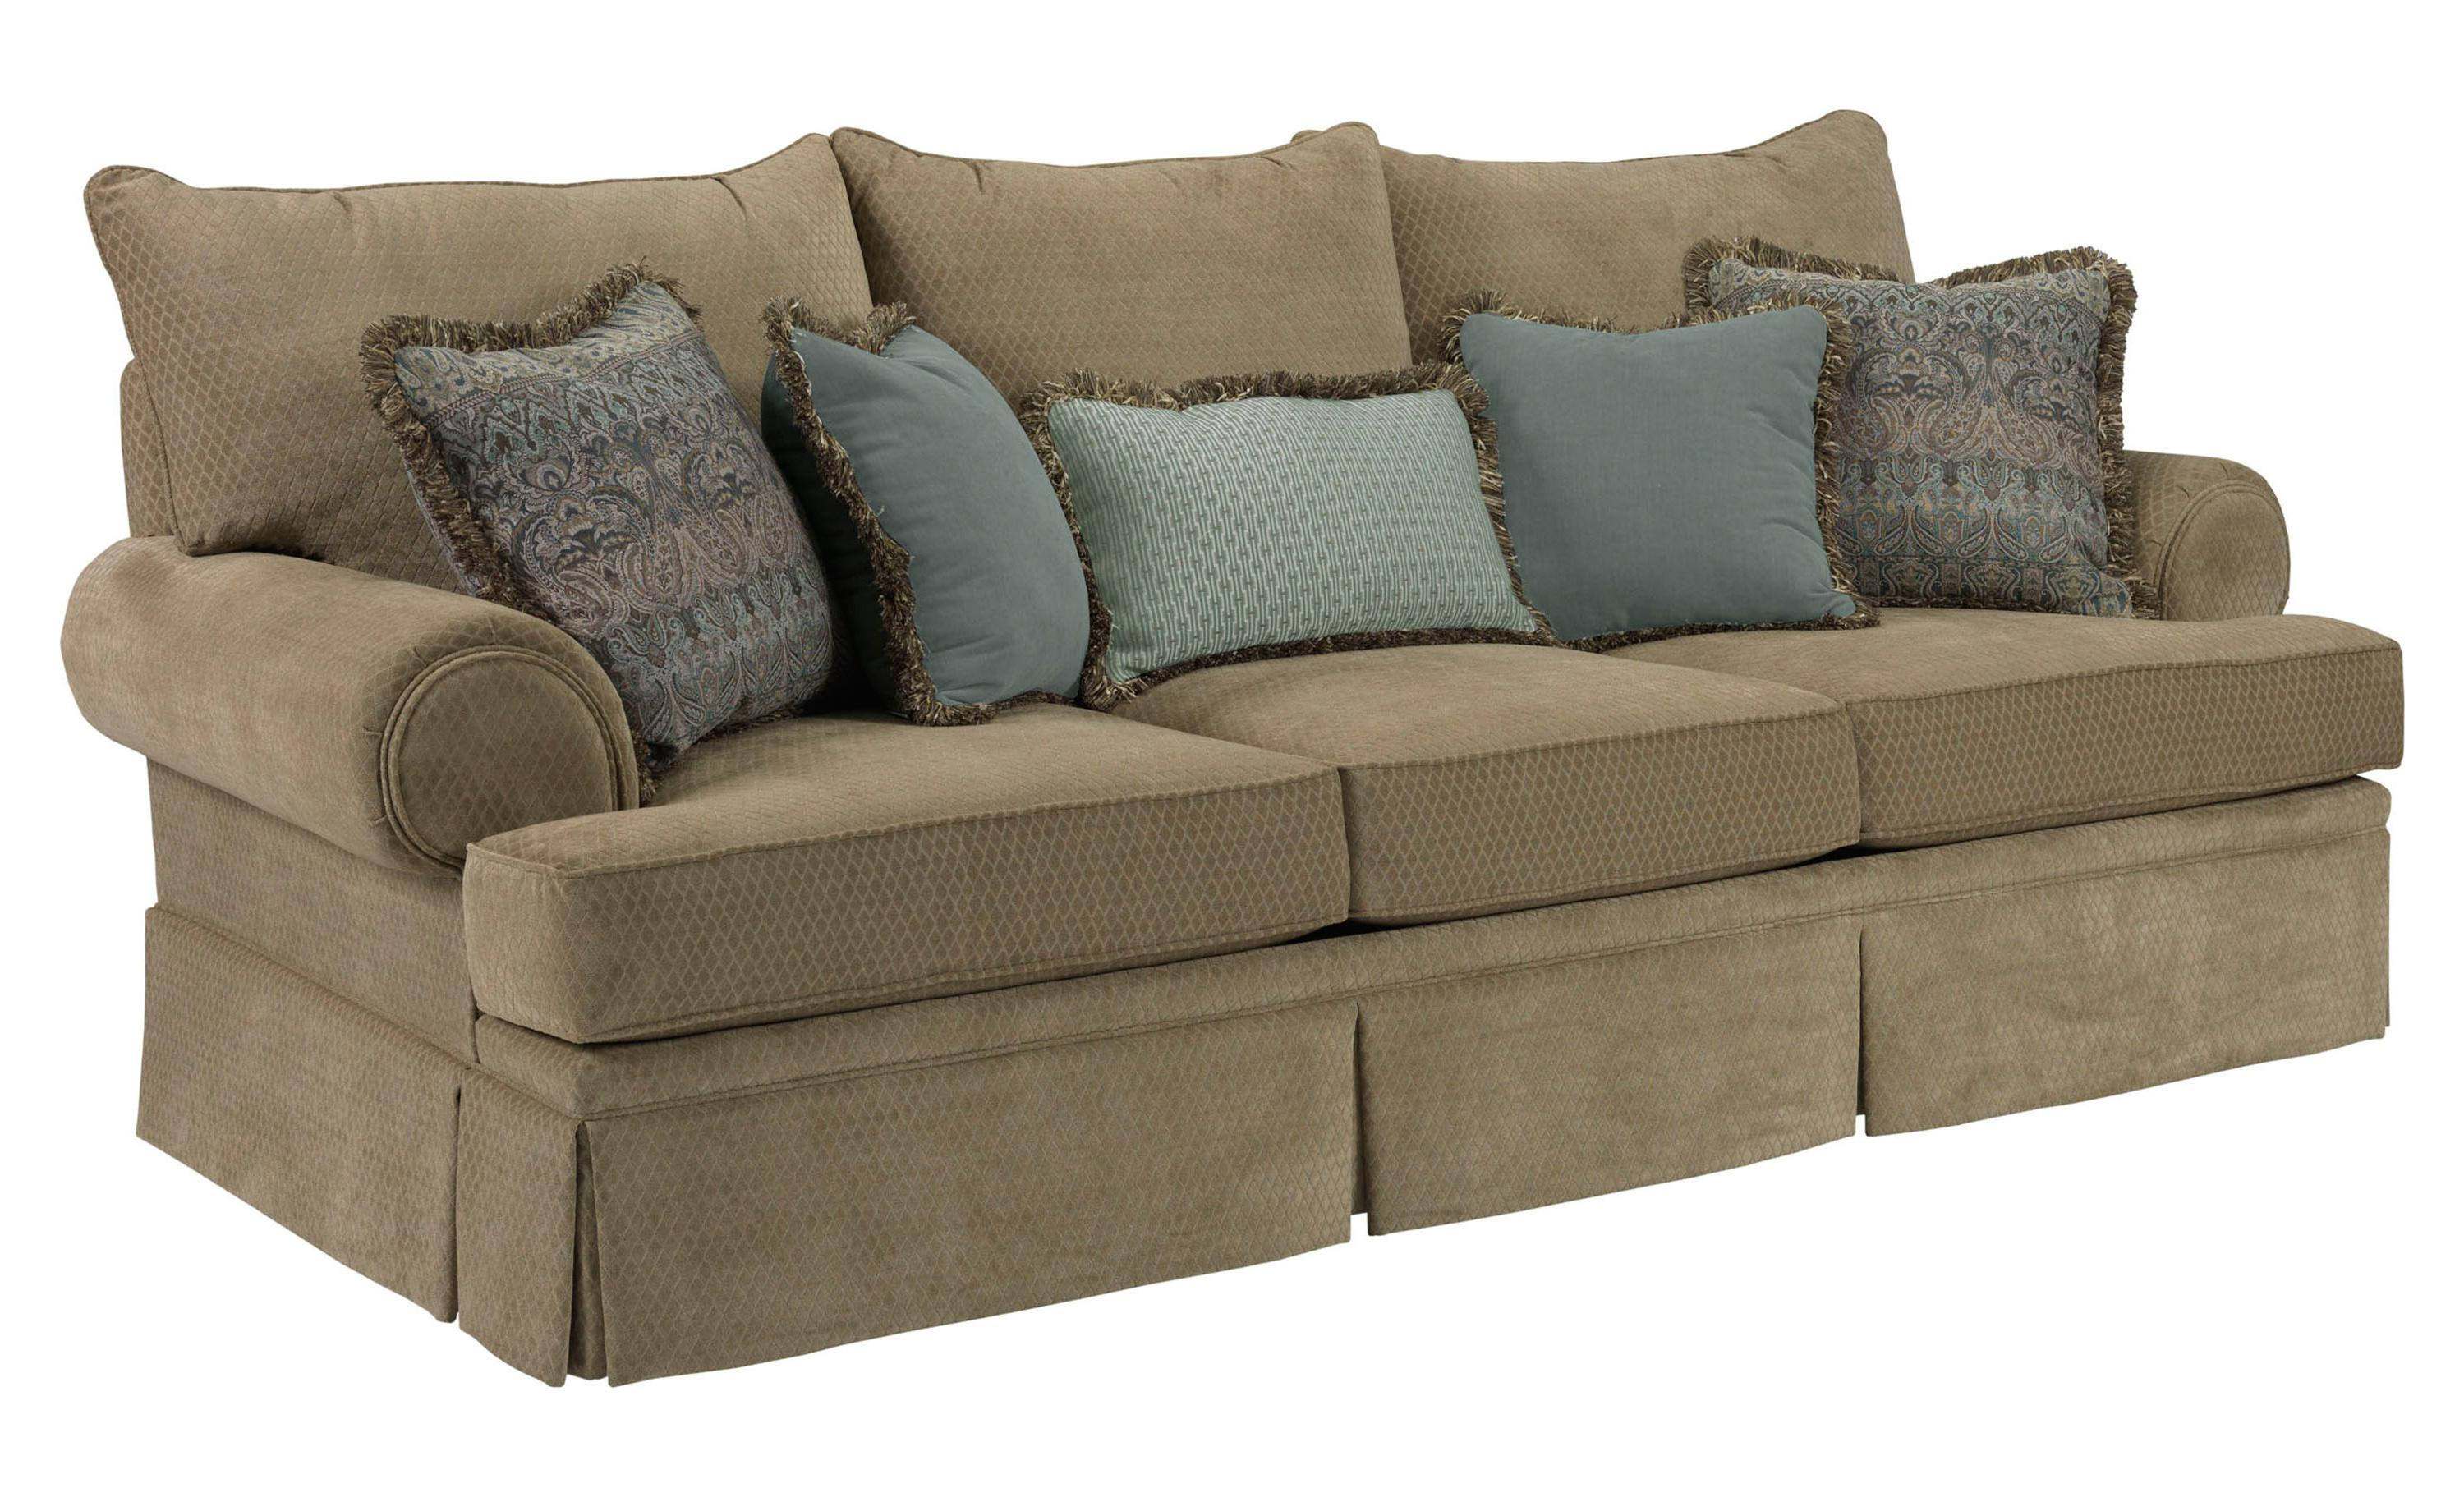 sam moore carson sofa leather sectional sleeper reviews skirted traditional three